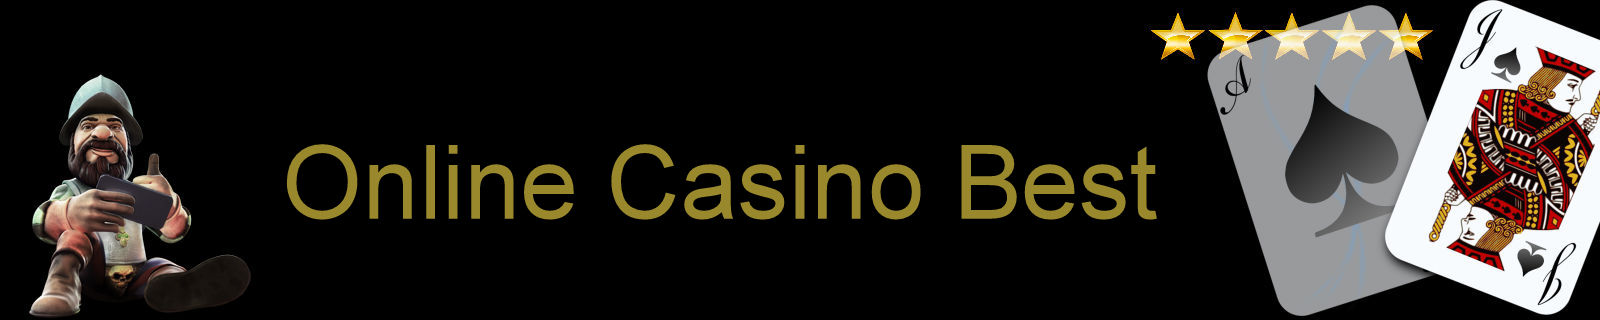 Play Blackjack Pro Online at Casino.com UK